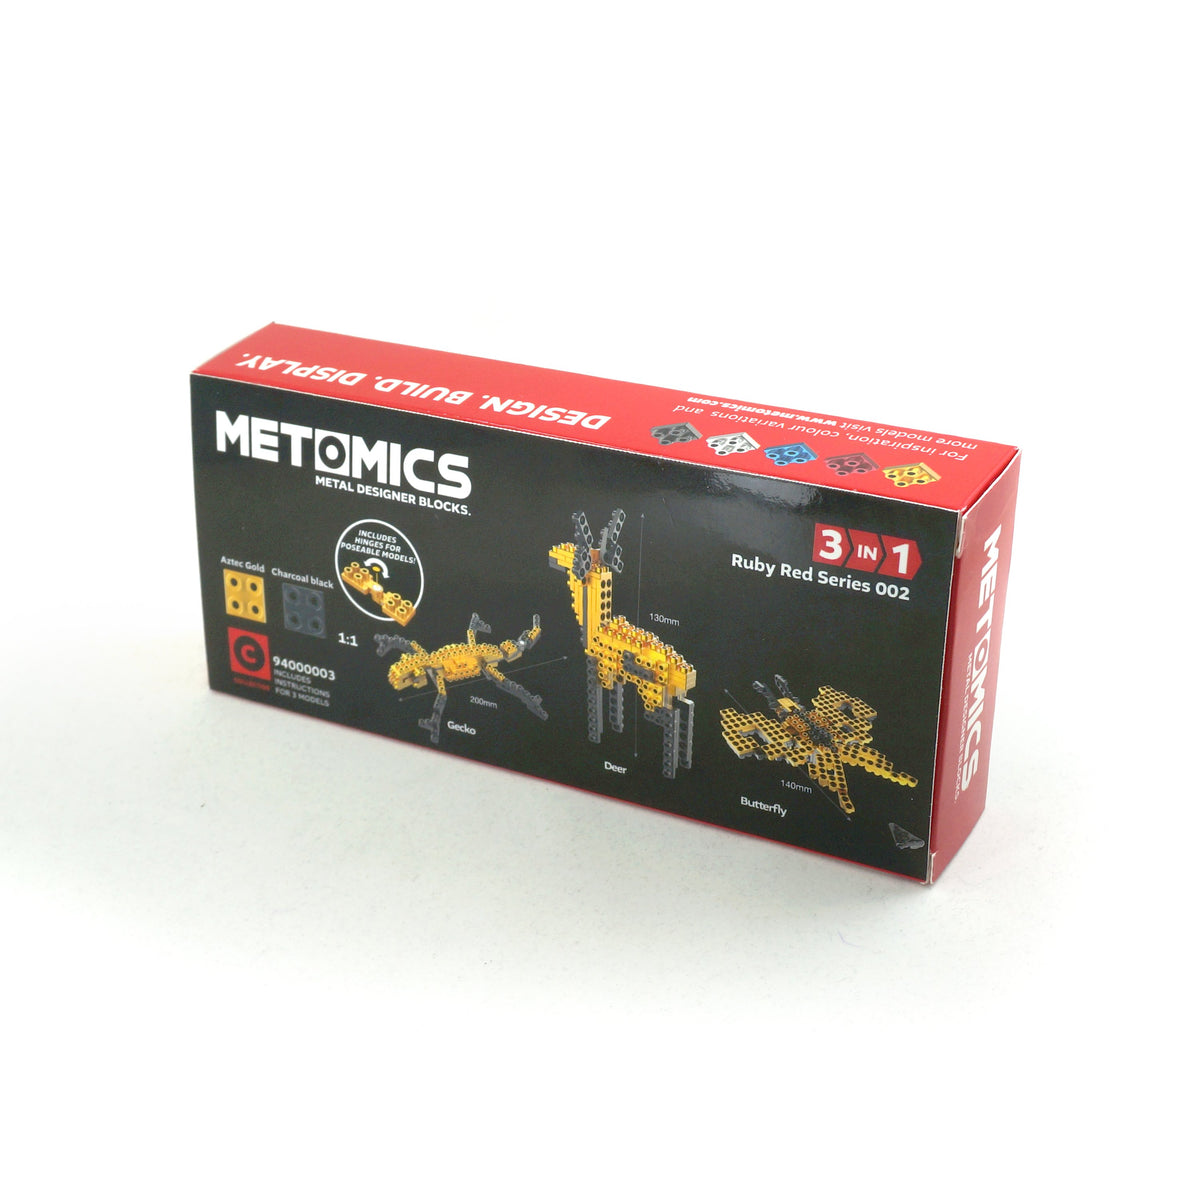 Metomics Deer 3-IN-1 3-in-1 set of 150 designer aluminium blocks builds